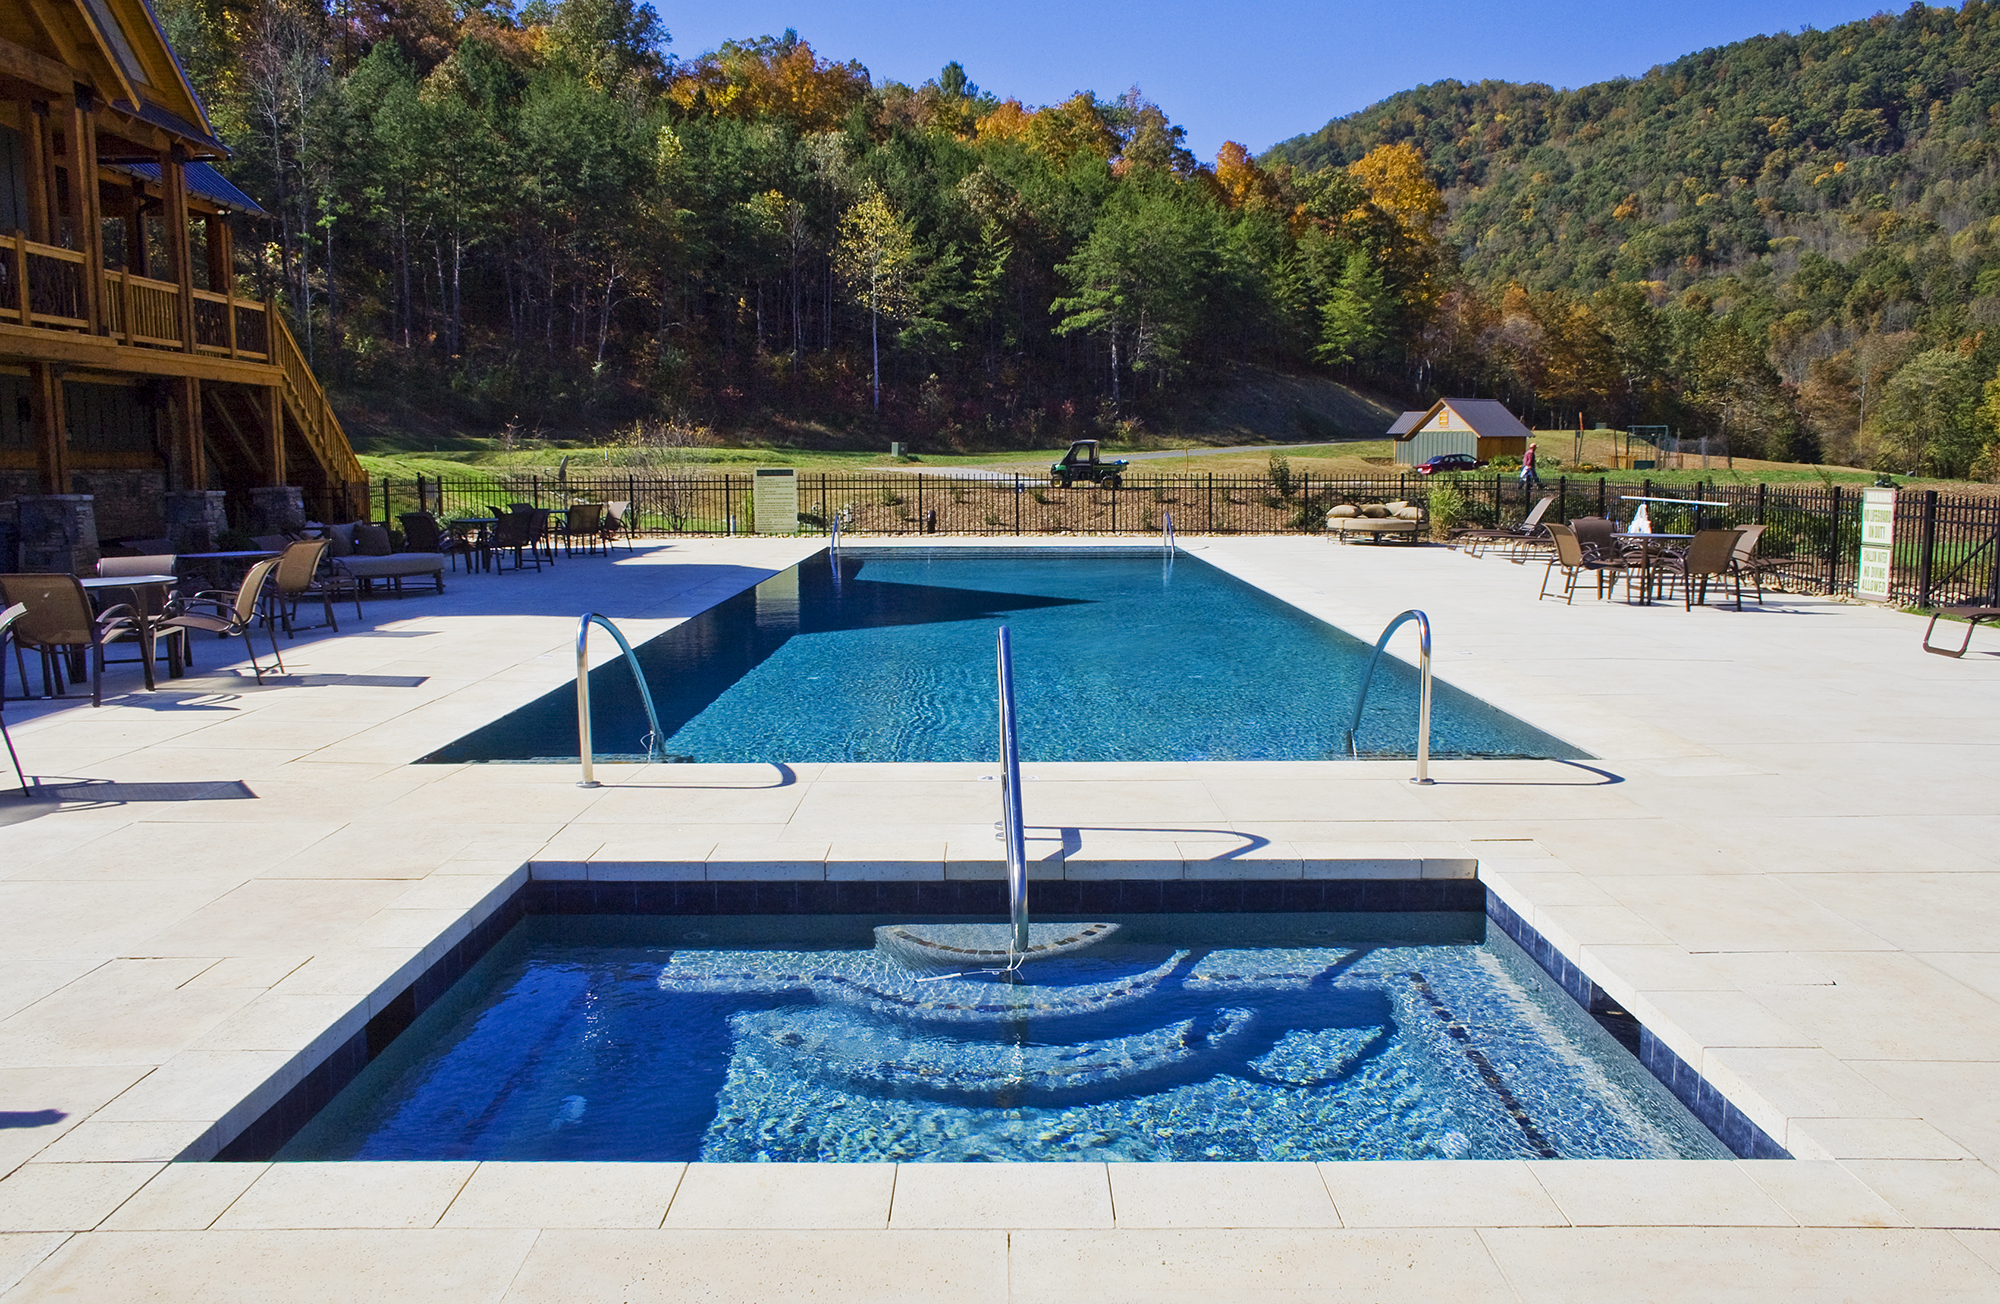 Spa & Pool: The visual enjoyment and interaction from the spa of this perimeter overflow design is clear.